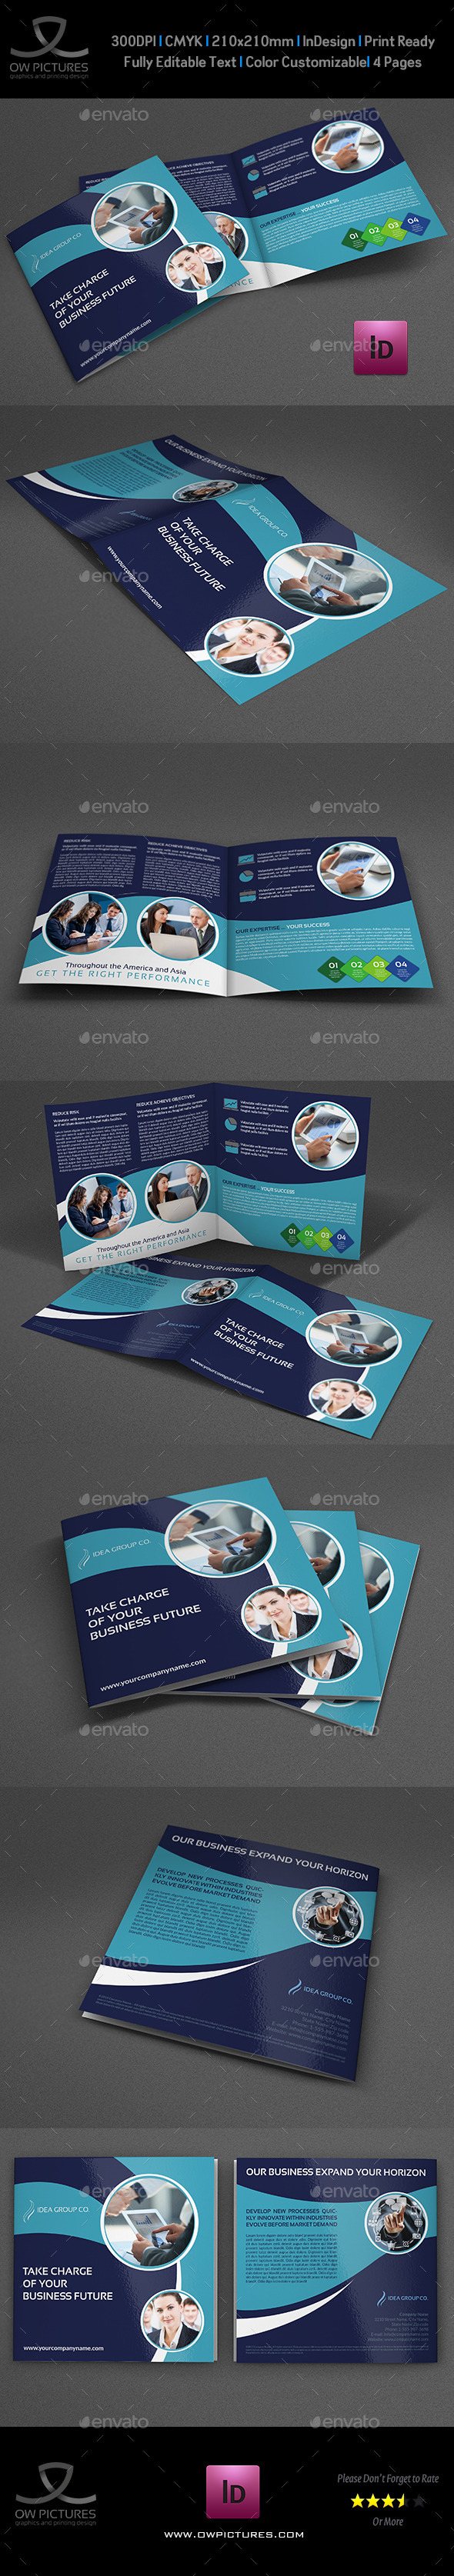 GraphicRiver Company Brochure Bi-Fold Template Vol.38 9939125